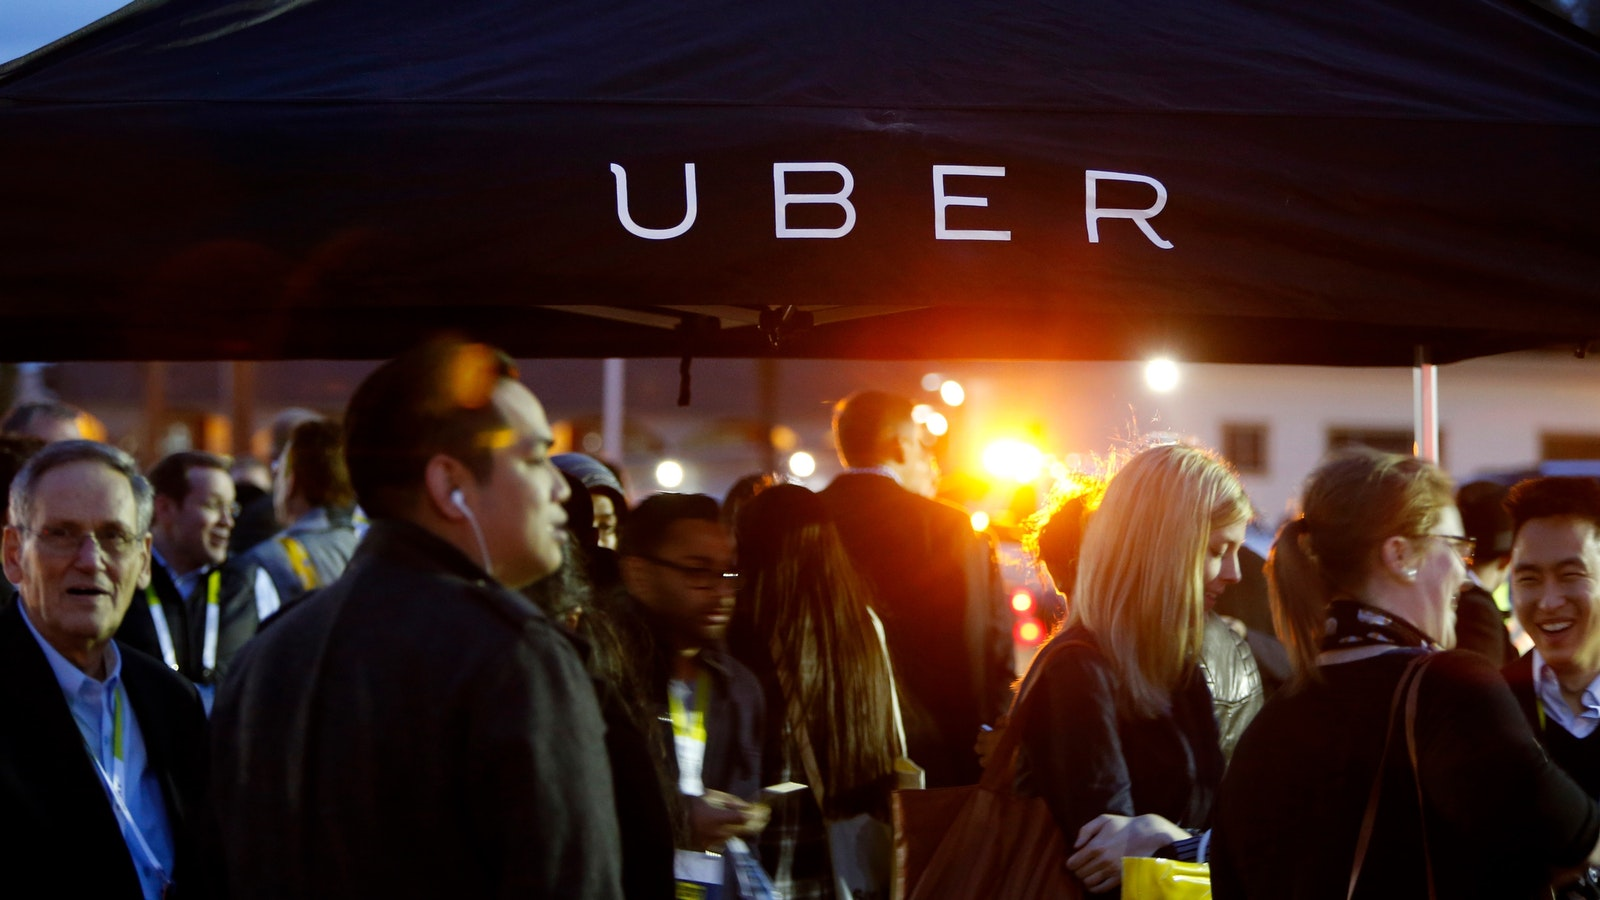 Uber at CES this month. Photo by Bloomberg.